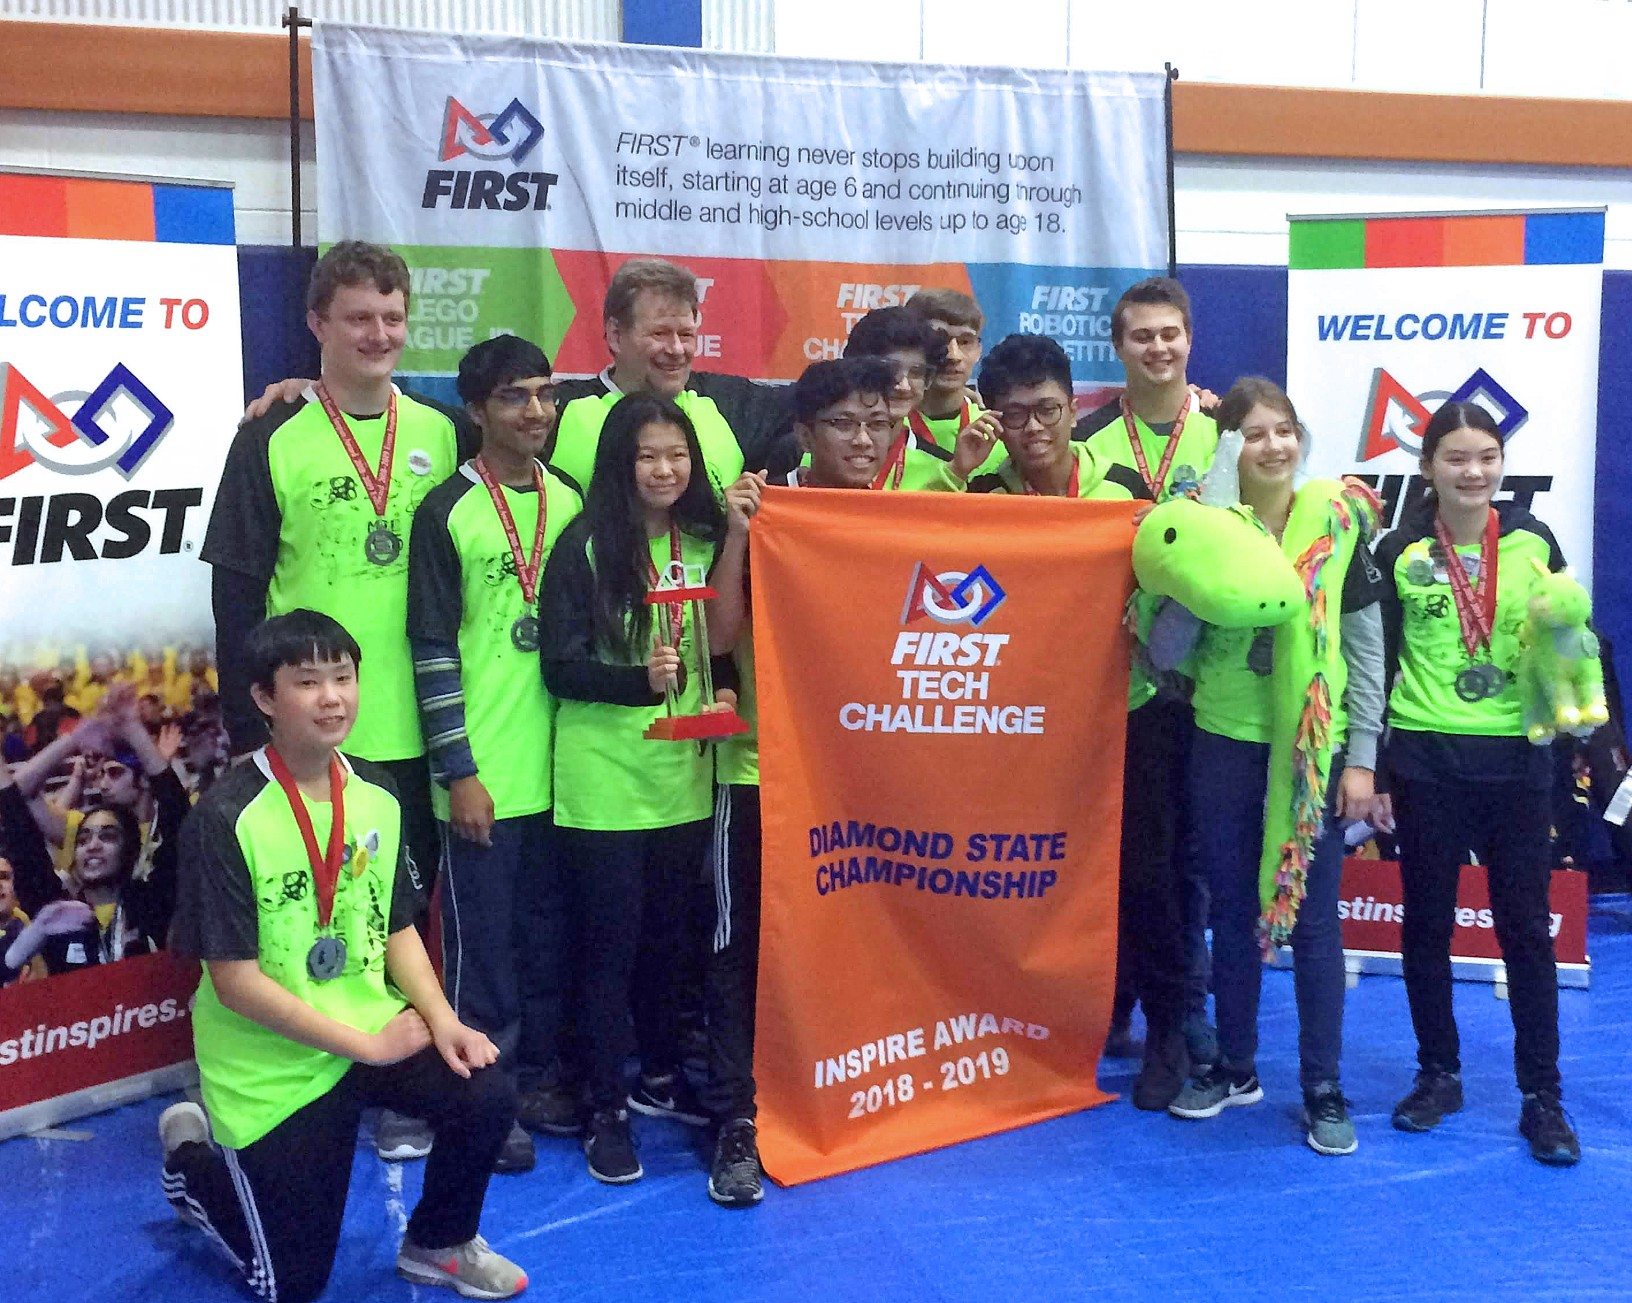 Eighth grader Clare O'Dwyer, robotics teammates qualify for worlds